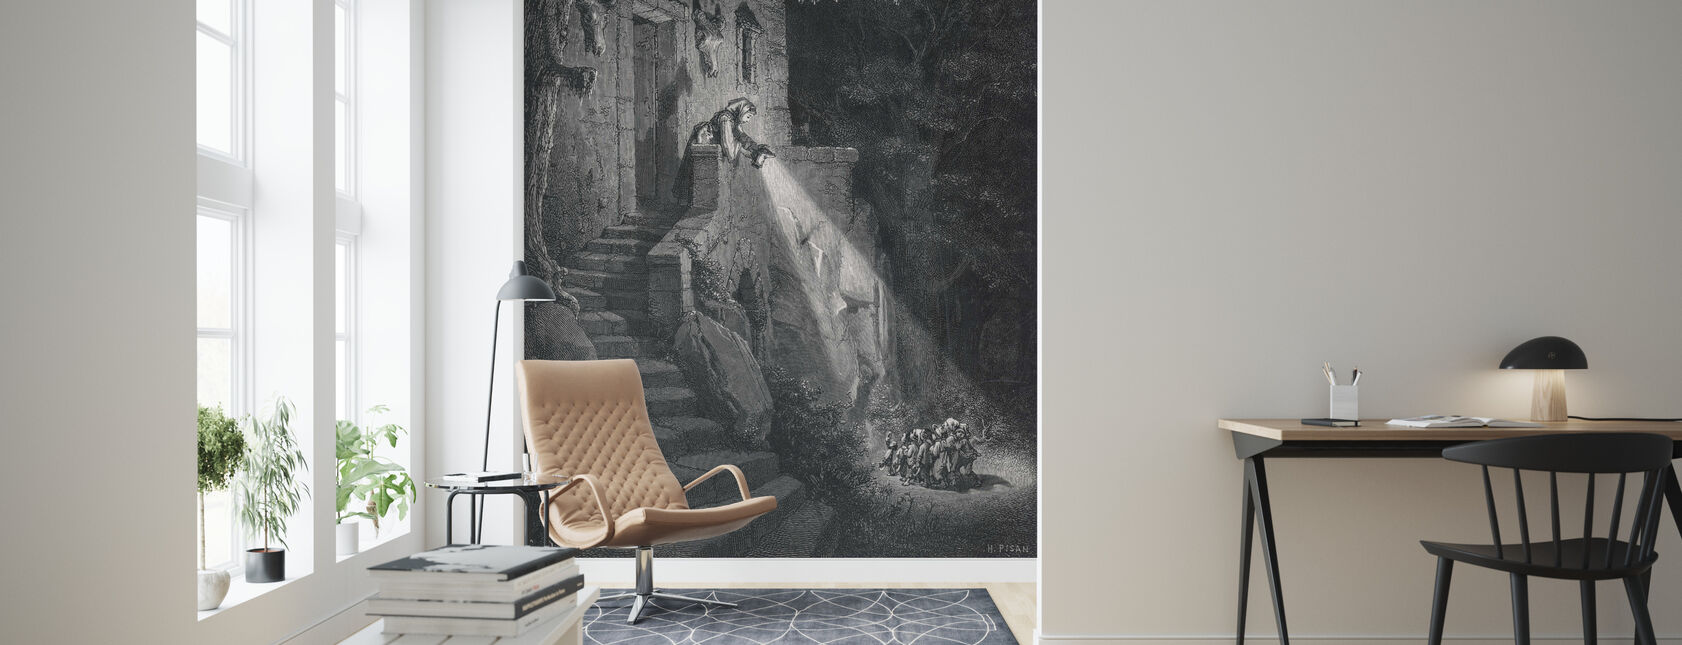 Gustave Dore - Ogre in the Forest - Wallpaper - Living Room